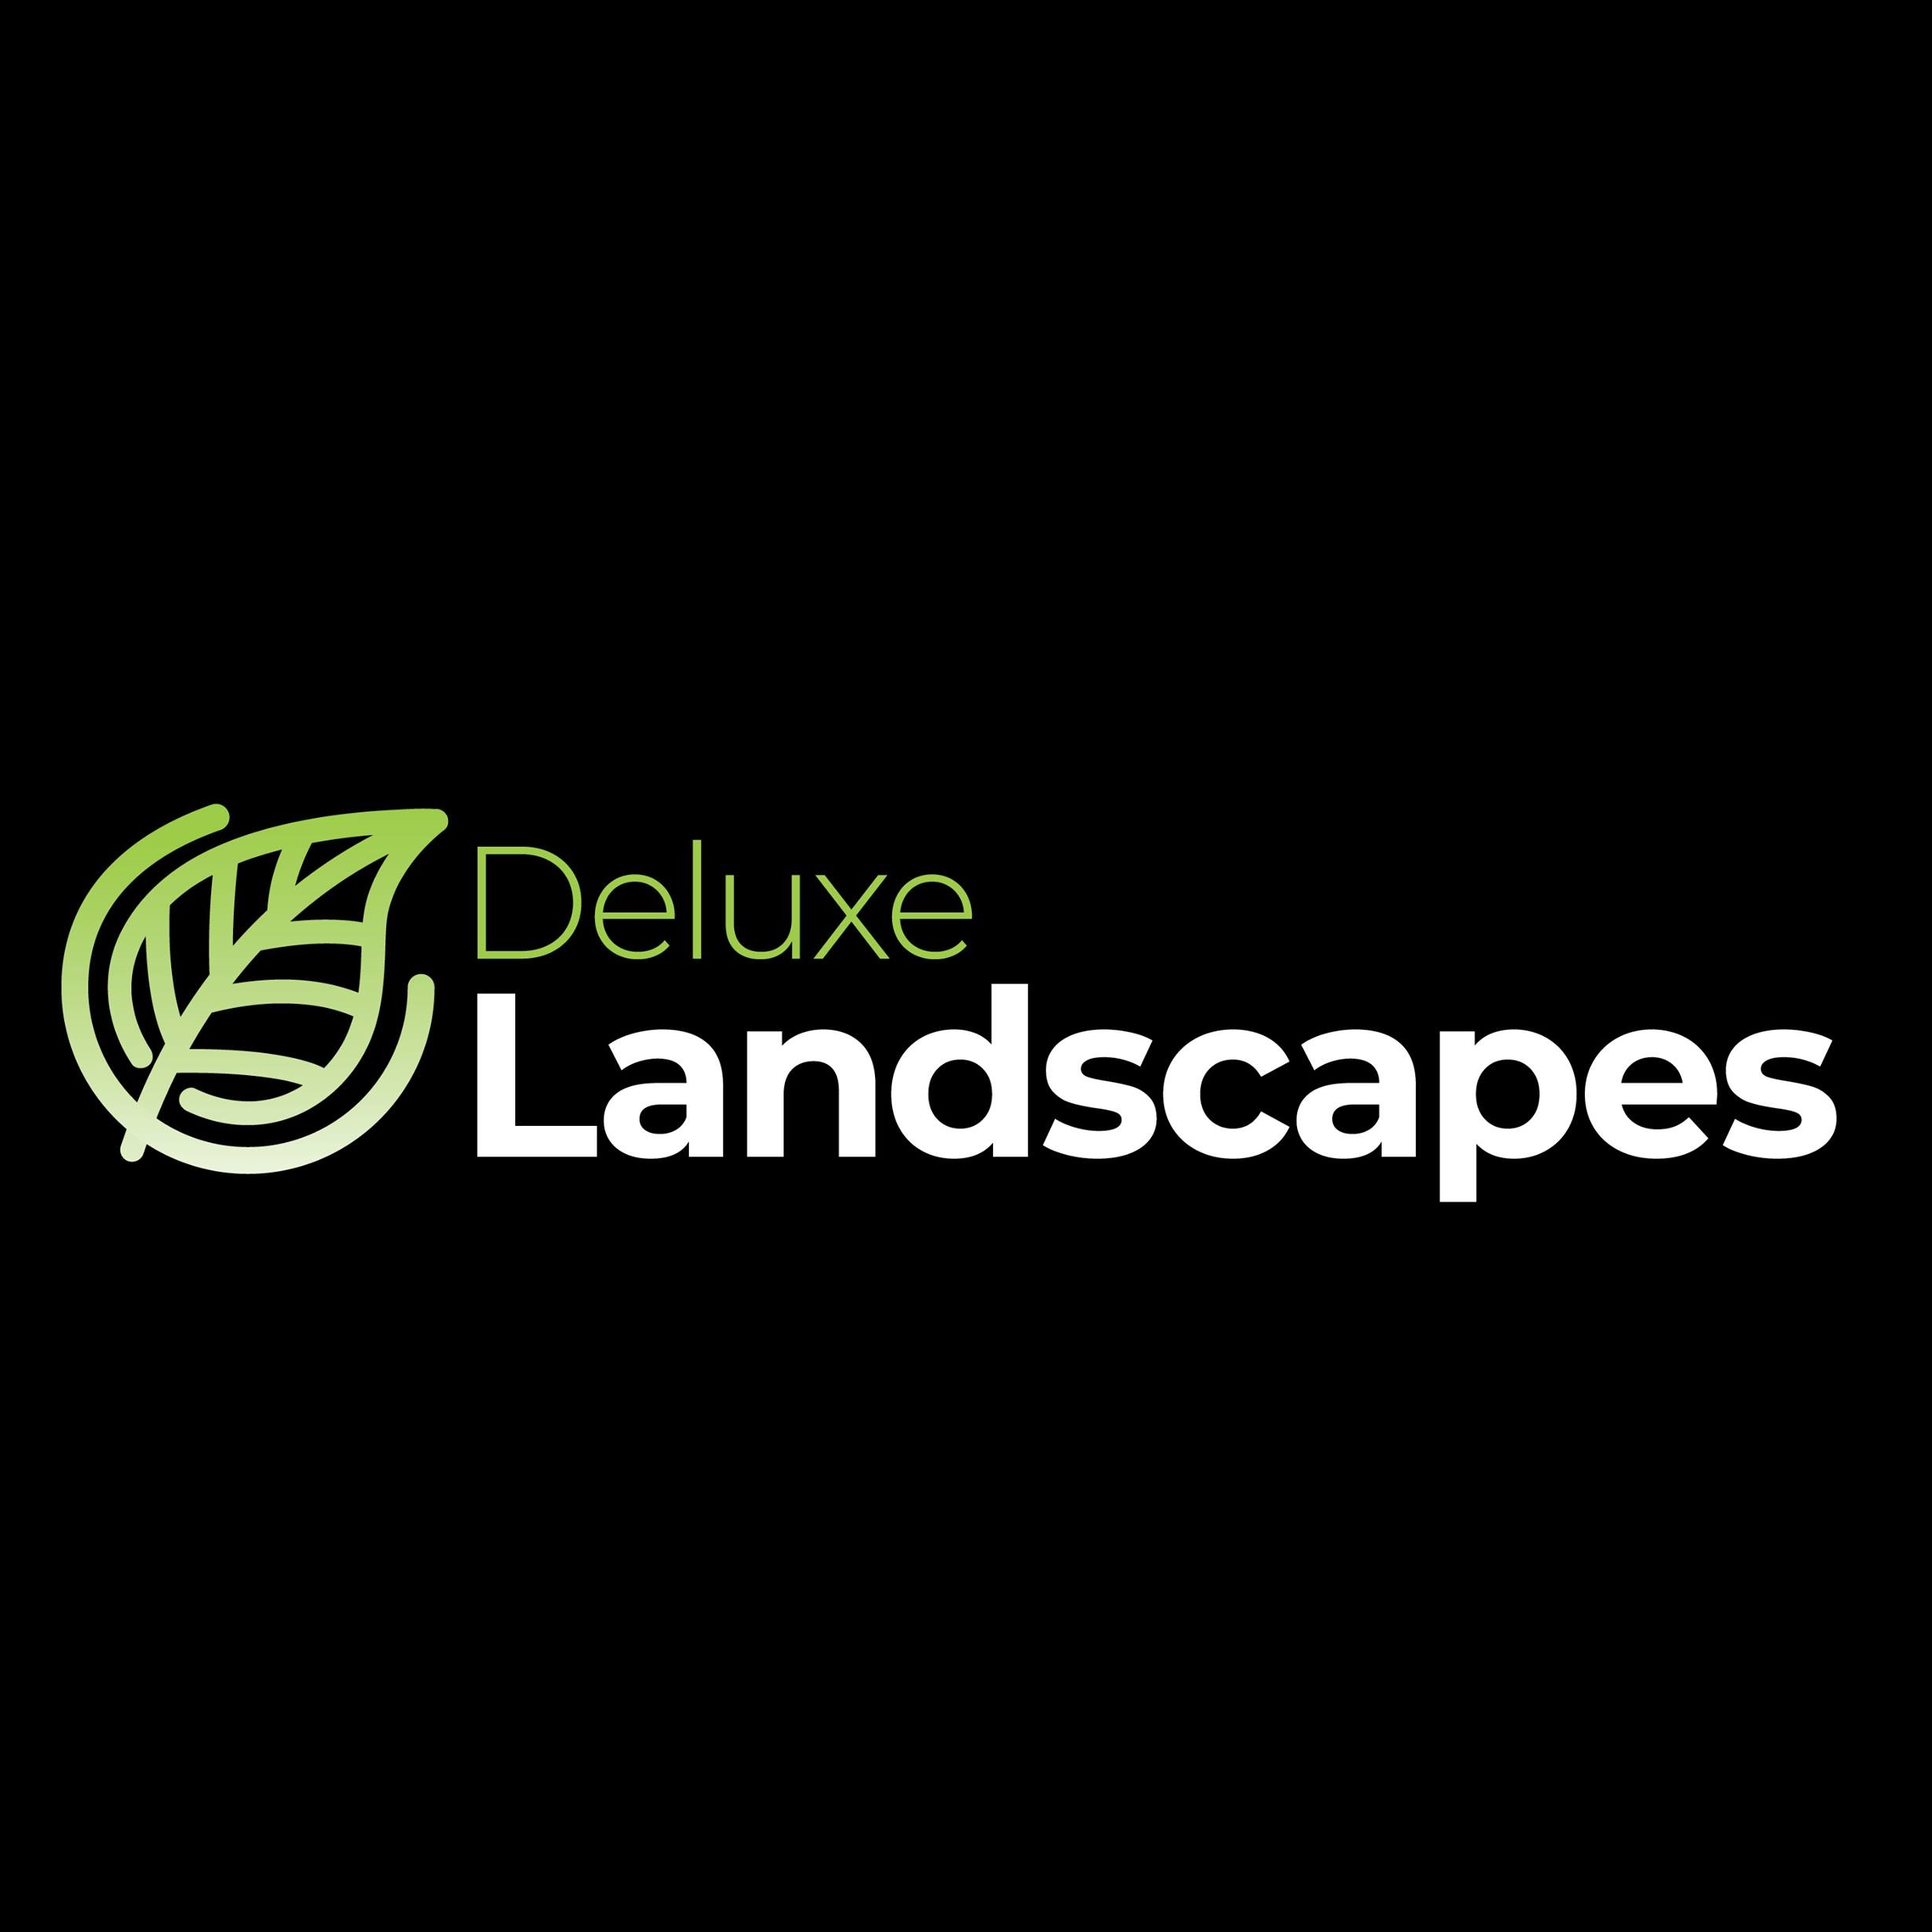 Deluxe Landscapes